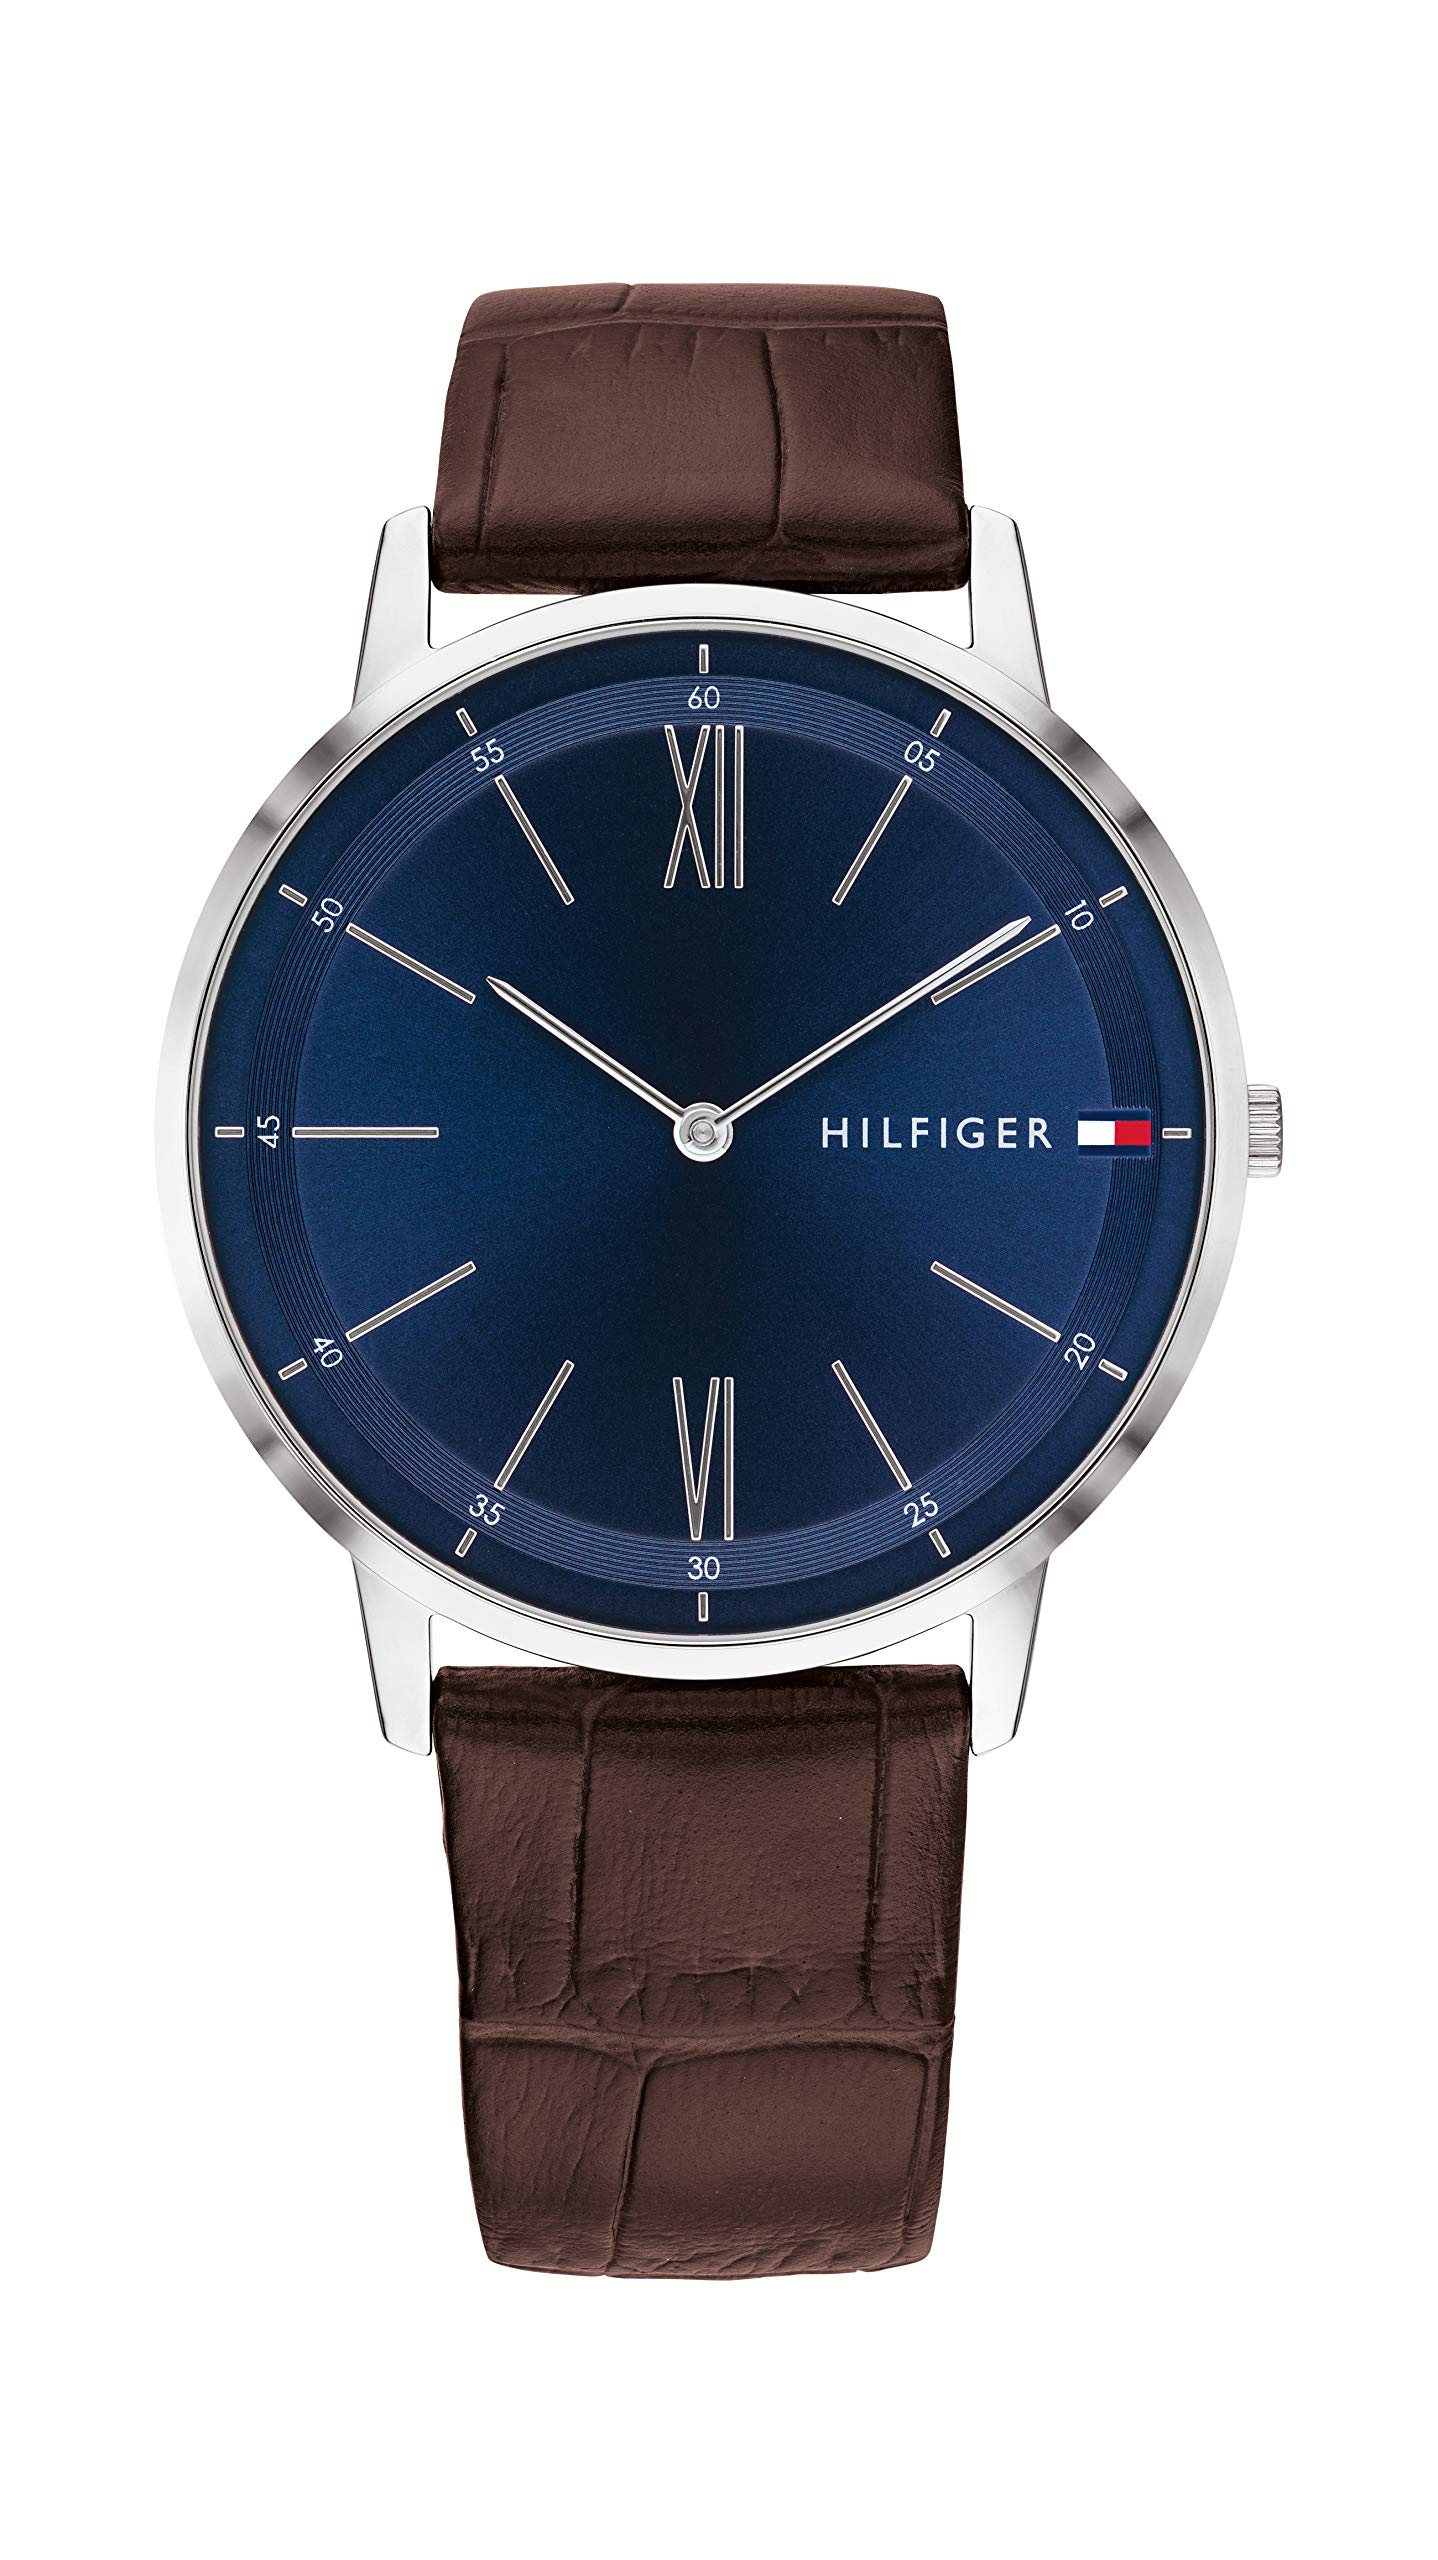 Tommy Hilfiger Men's Stainless Steel Quartz Watch with Leather Strap, Brown, 20 (Model: 1791514)